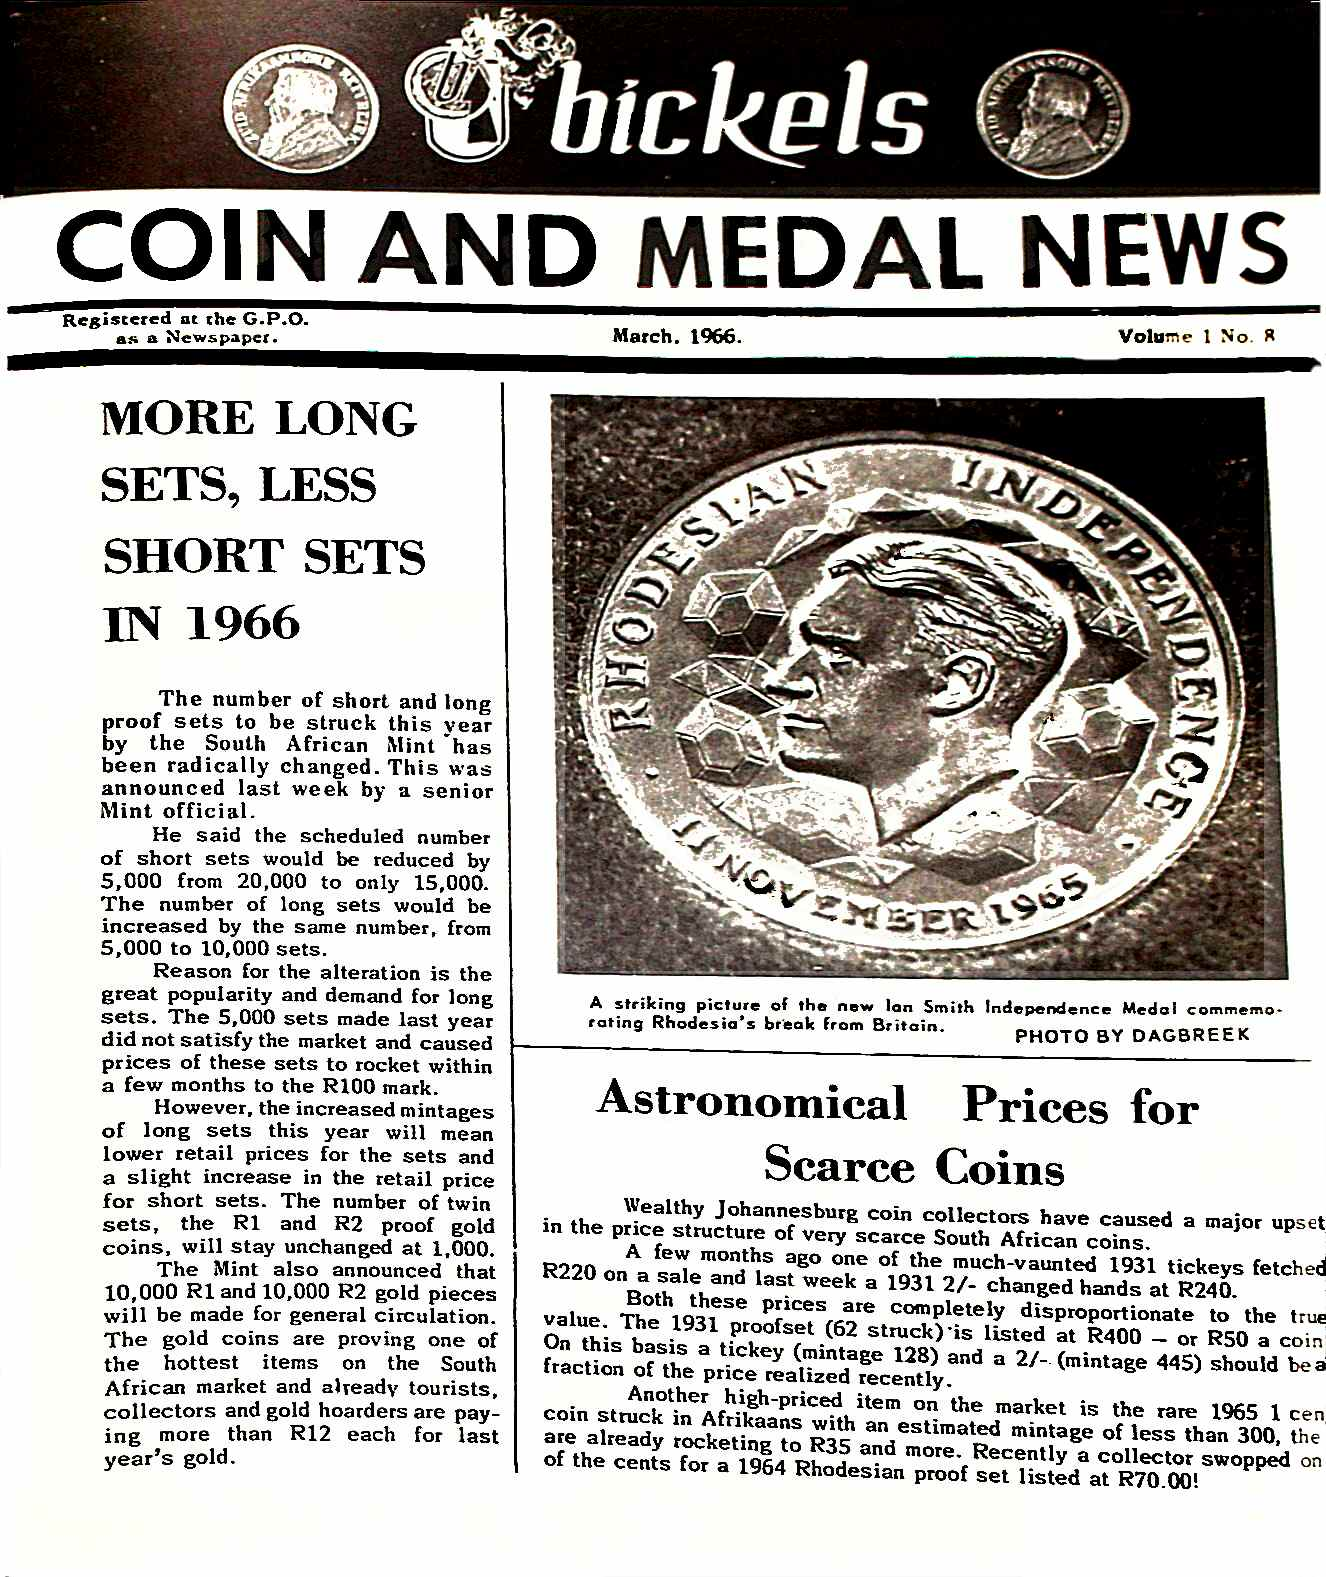 Bickels Coin & Medal News March 1966 Vol 1 No 8